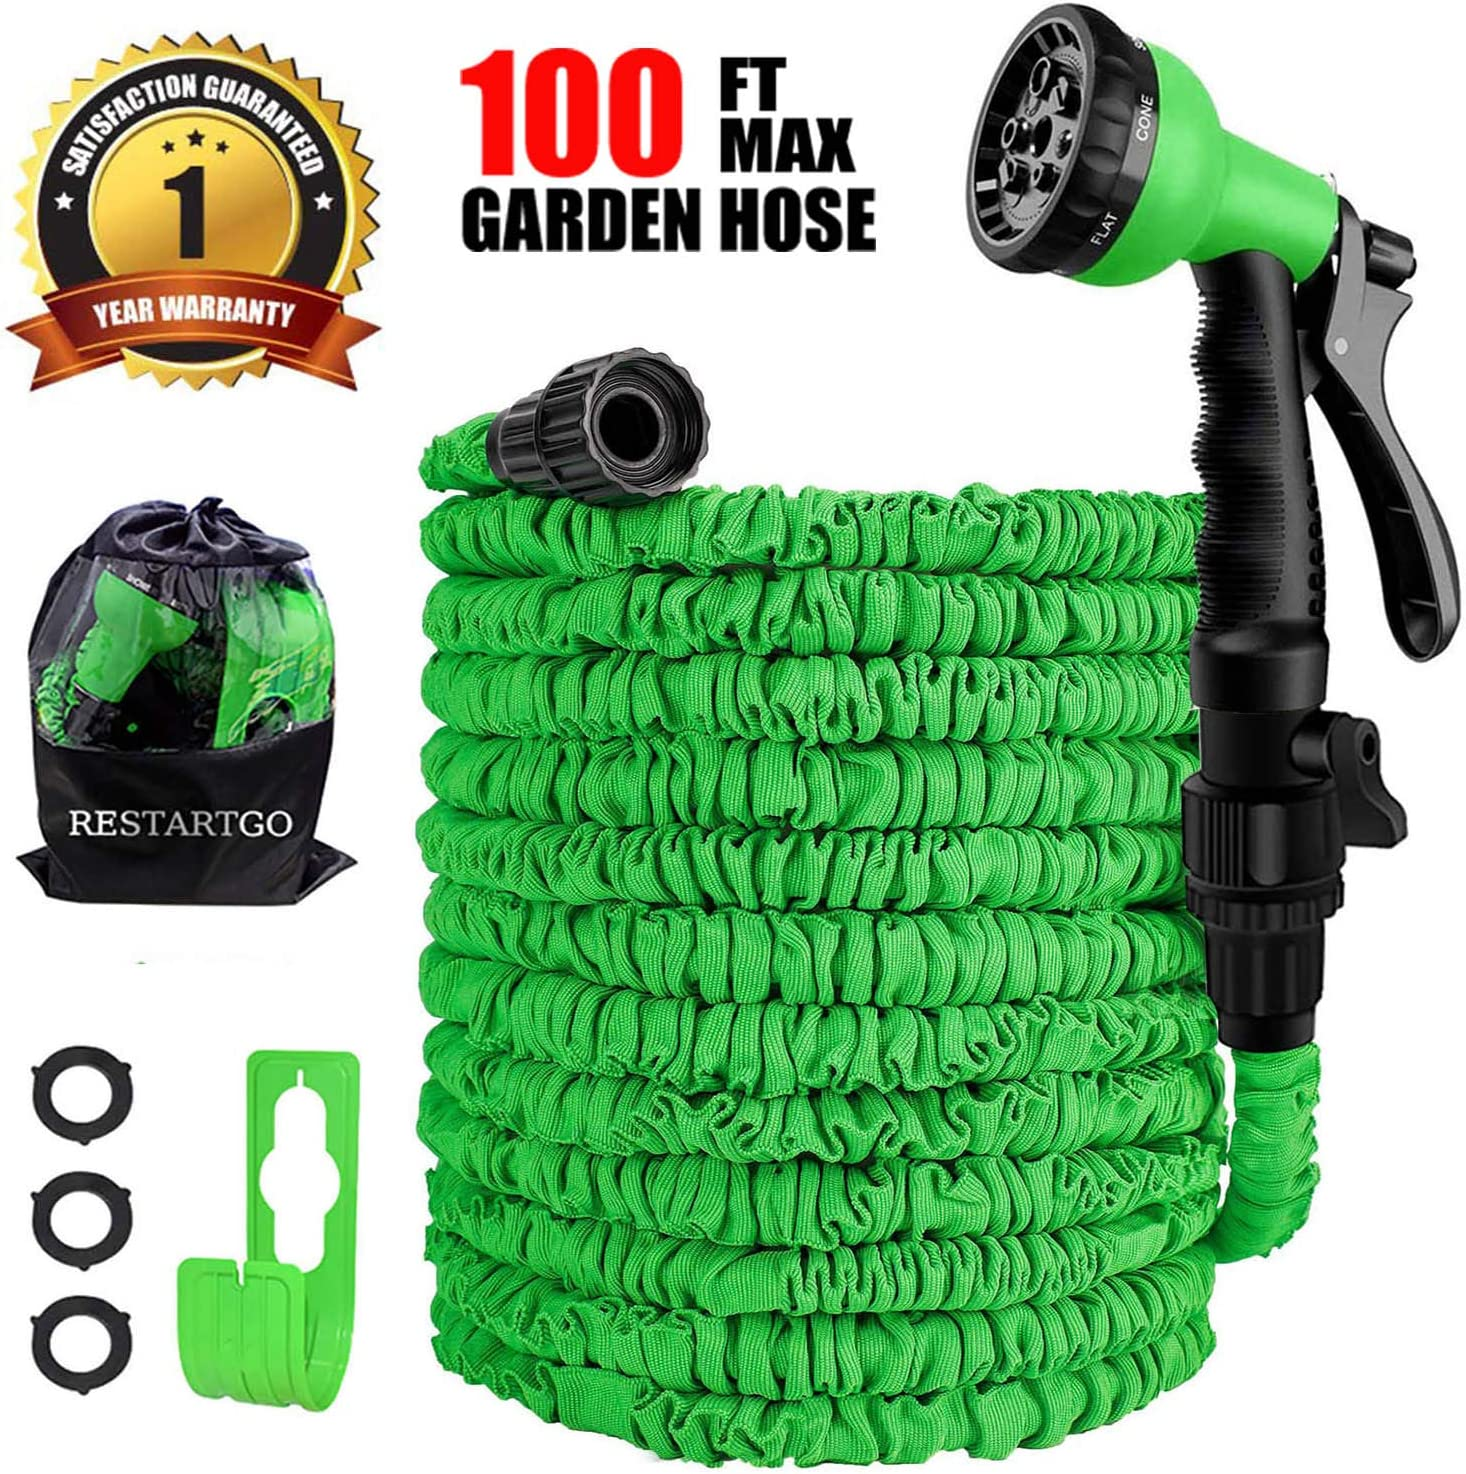 Restartgo 100FT Garden Hose Reel Expandable 3 Times TPE Super-Strength High Pressure Flexible Water Hose,8-Function High-Pressure Spray Nozzle with 3//4 Solid Fittings Comes with Free Hose Holder